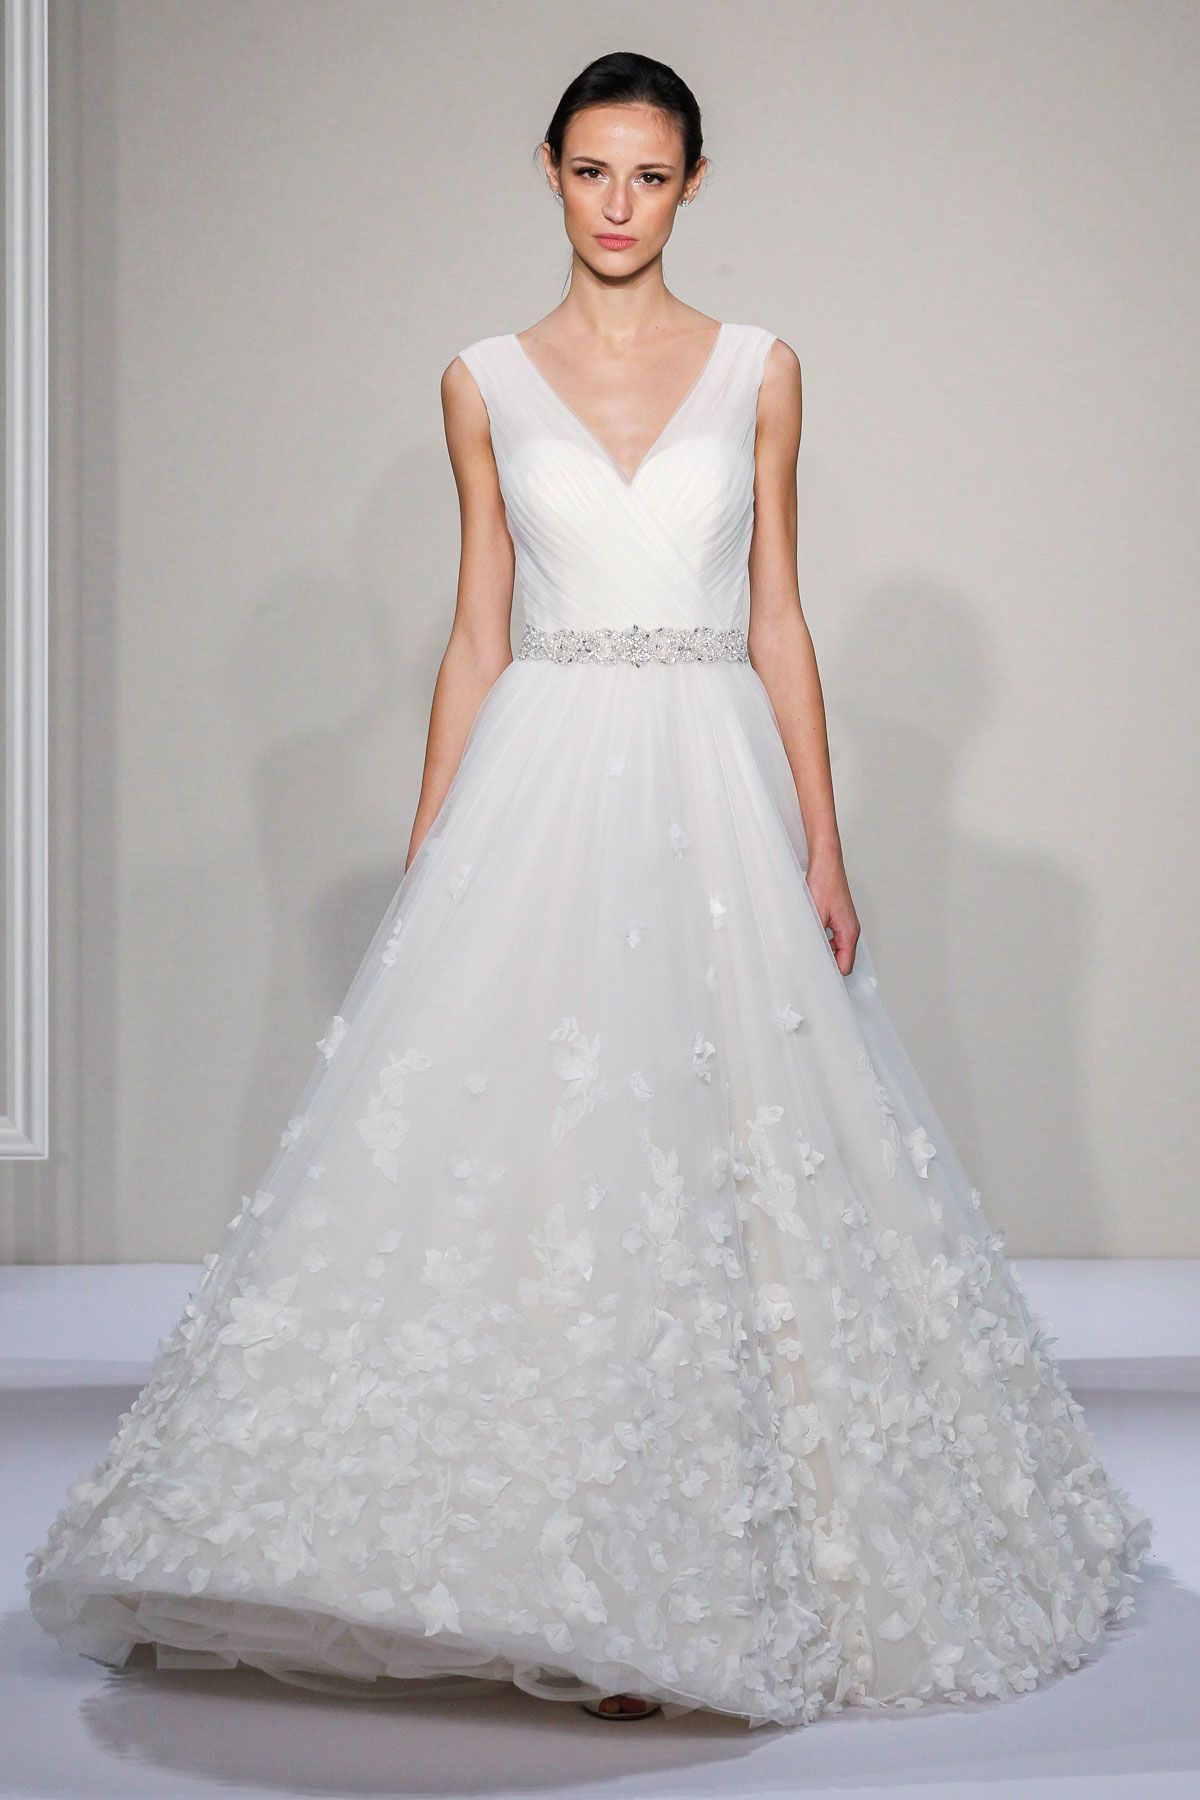 Nyc inspired gowns by dennis basso for kleinfeld bridal 2016 nyc inspired gowns by dennis basso for kleinfeld bridal 2016 ombrellifo Choice Image